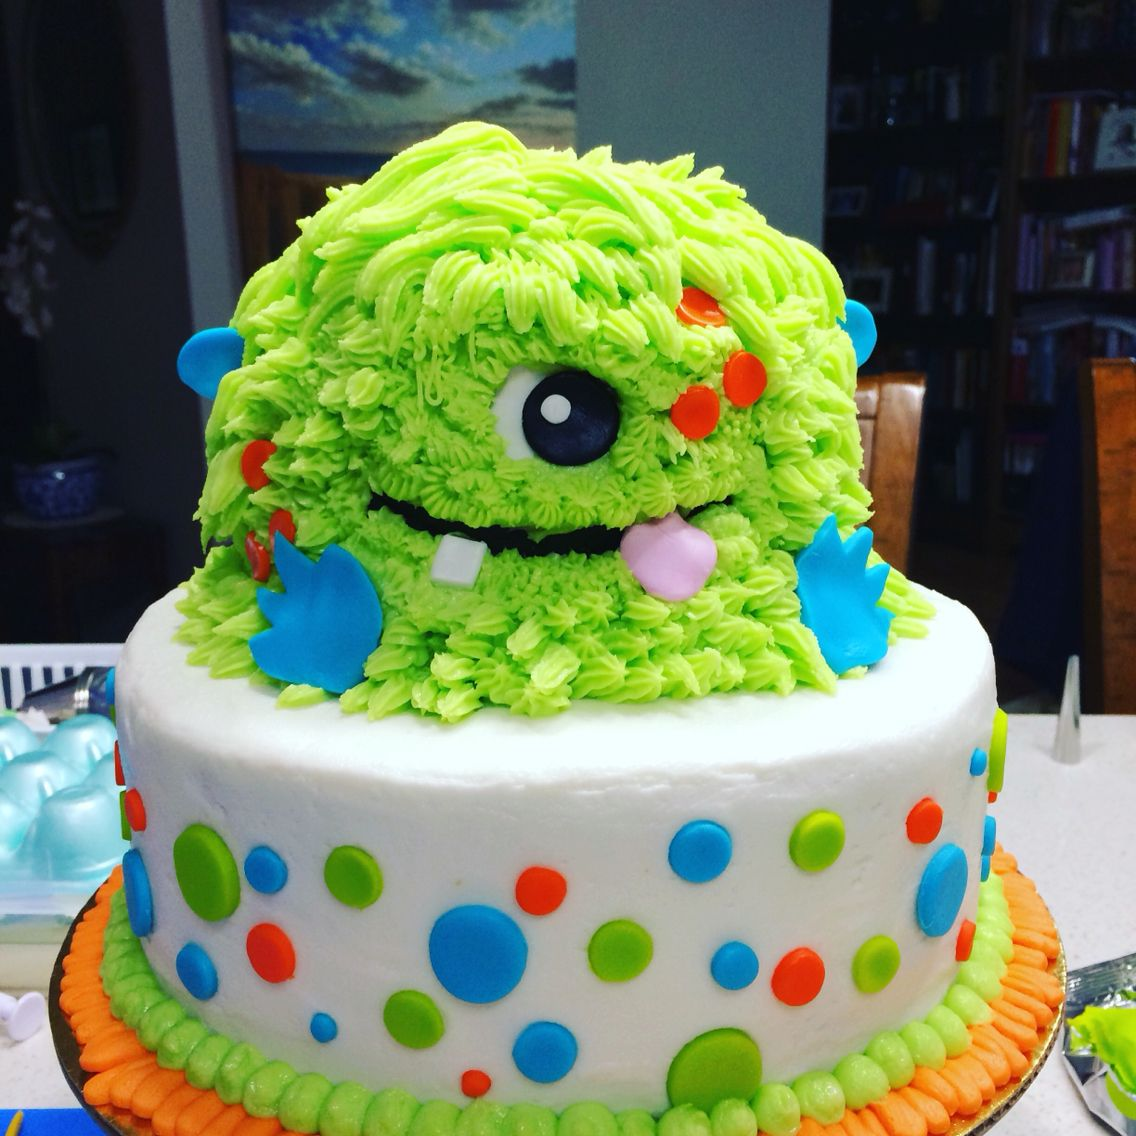 A Little Monster Cake Decorating Pinterest Pastel Nina - Pasteles-nios